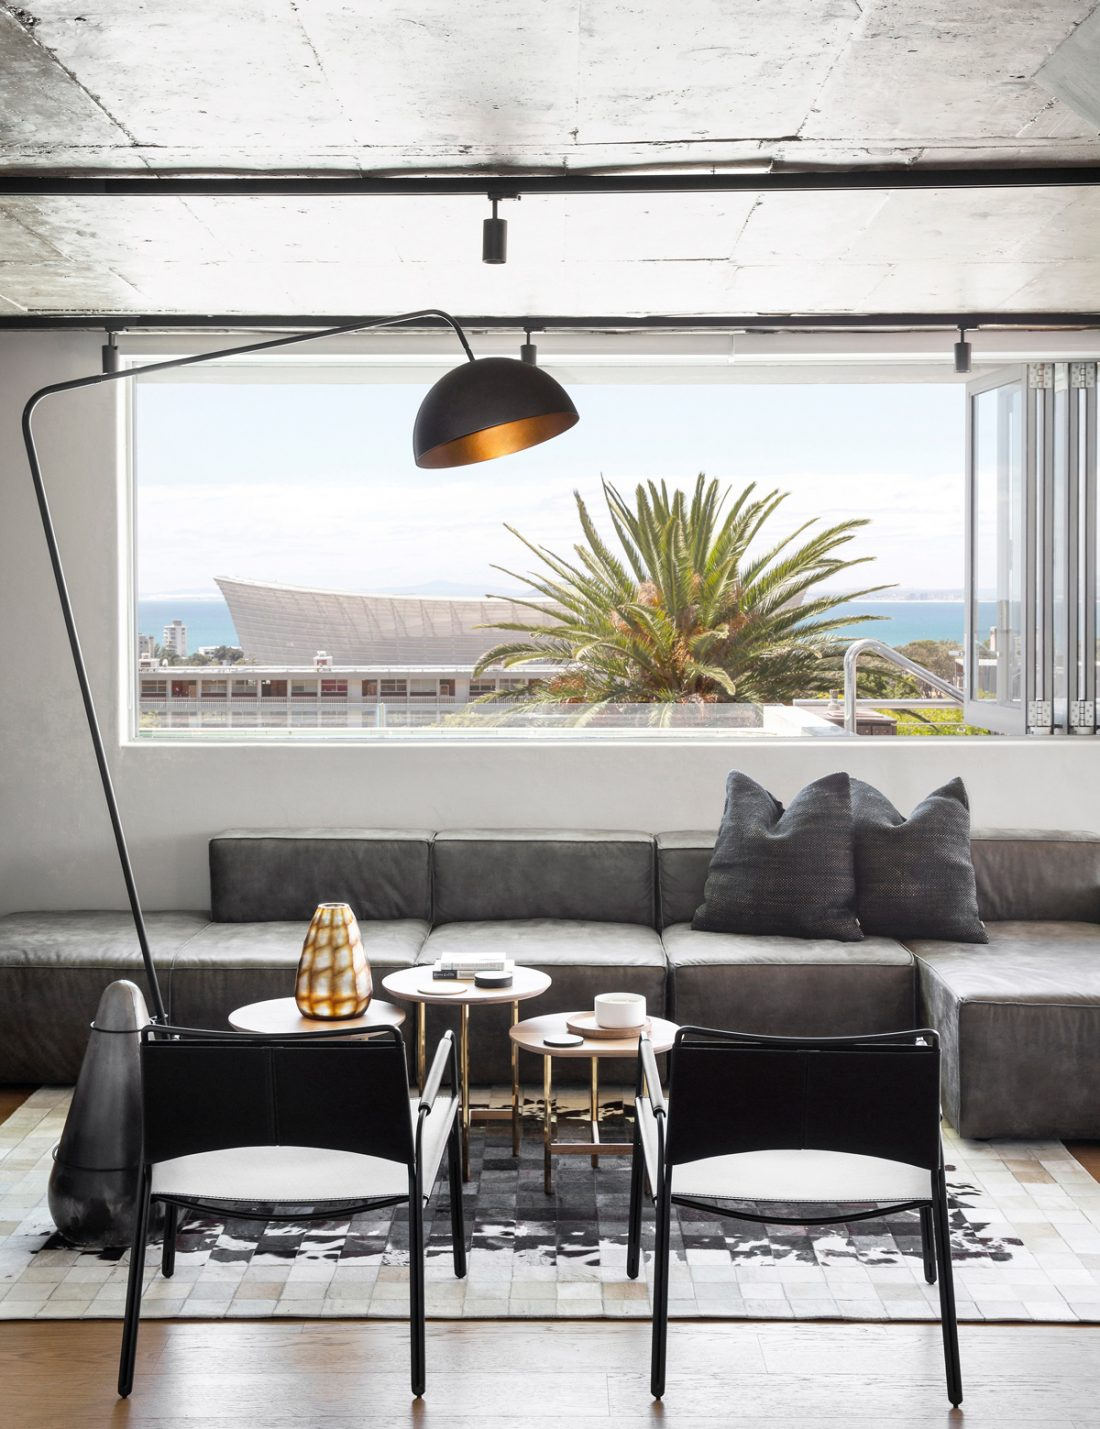 Hendre Bloem: Cape Town penthouse with killer views gets a moody makeover.